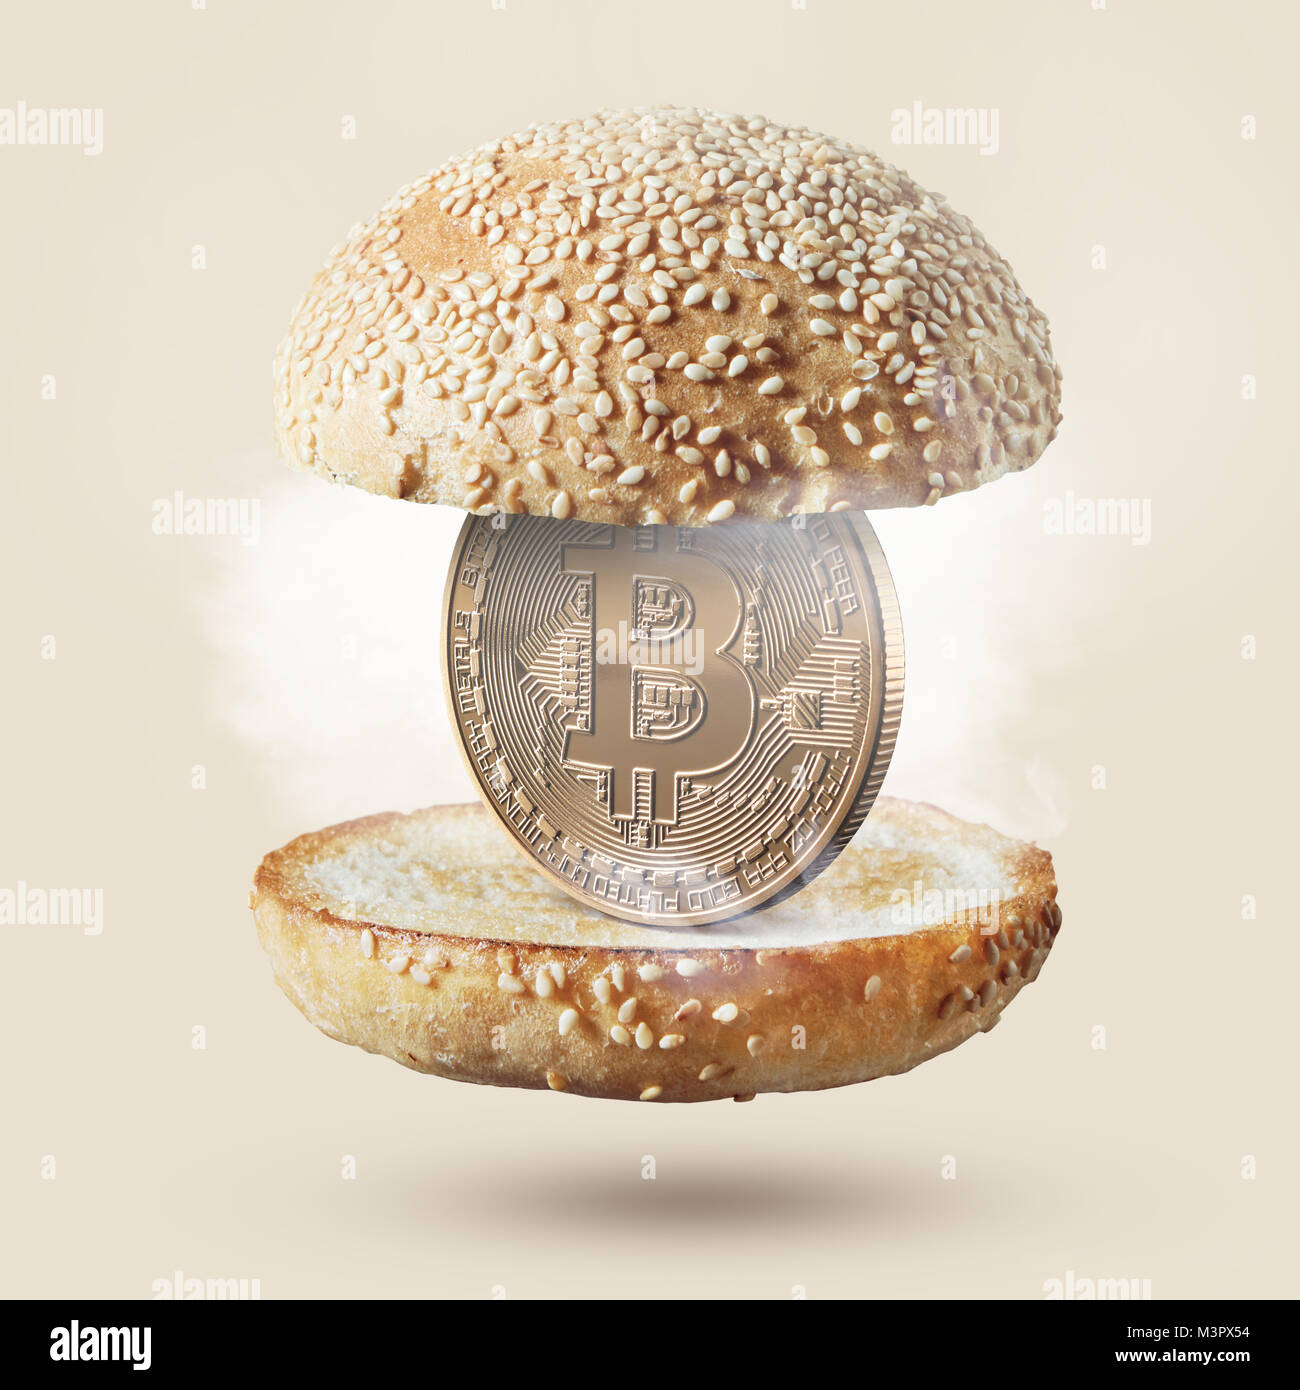 Hot burger buns with a coin bitcoin gold inside food concept buy hot burger buns with a coin bitcoin gold inside food concept buy food for cryptocurrency photo can be used for food ico projects or news about inno ccuart Gallery